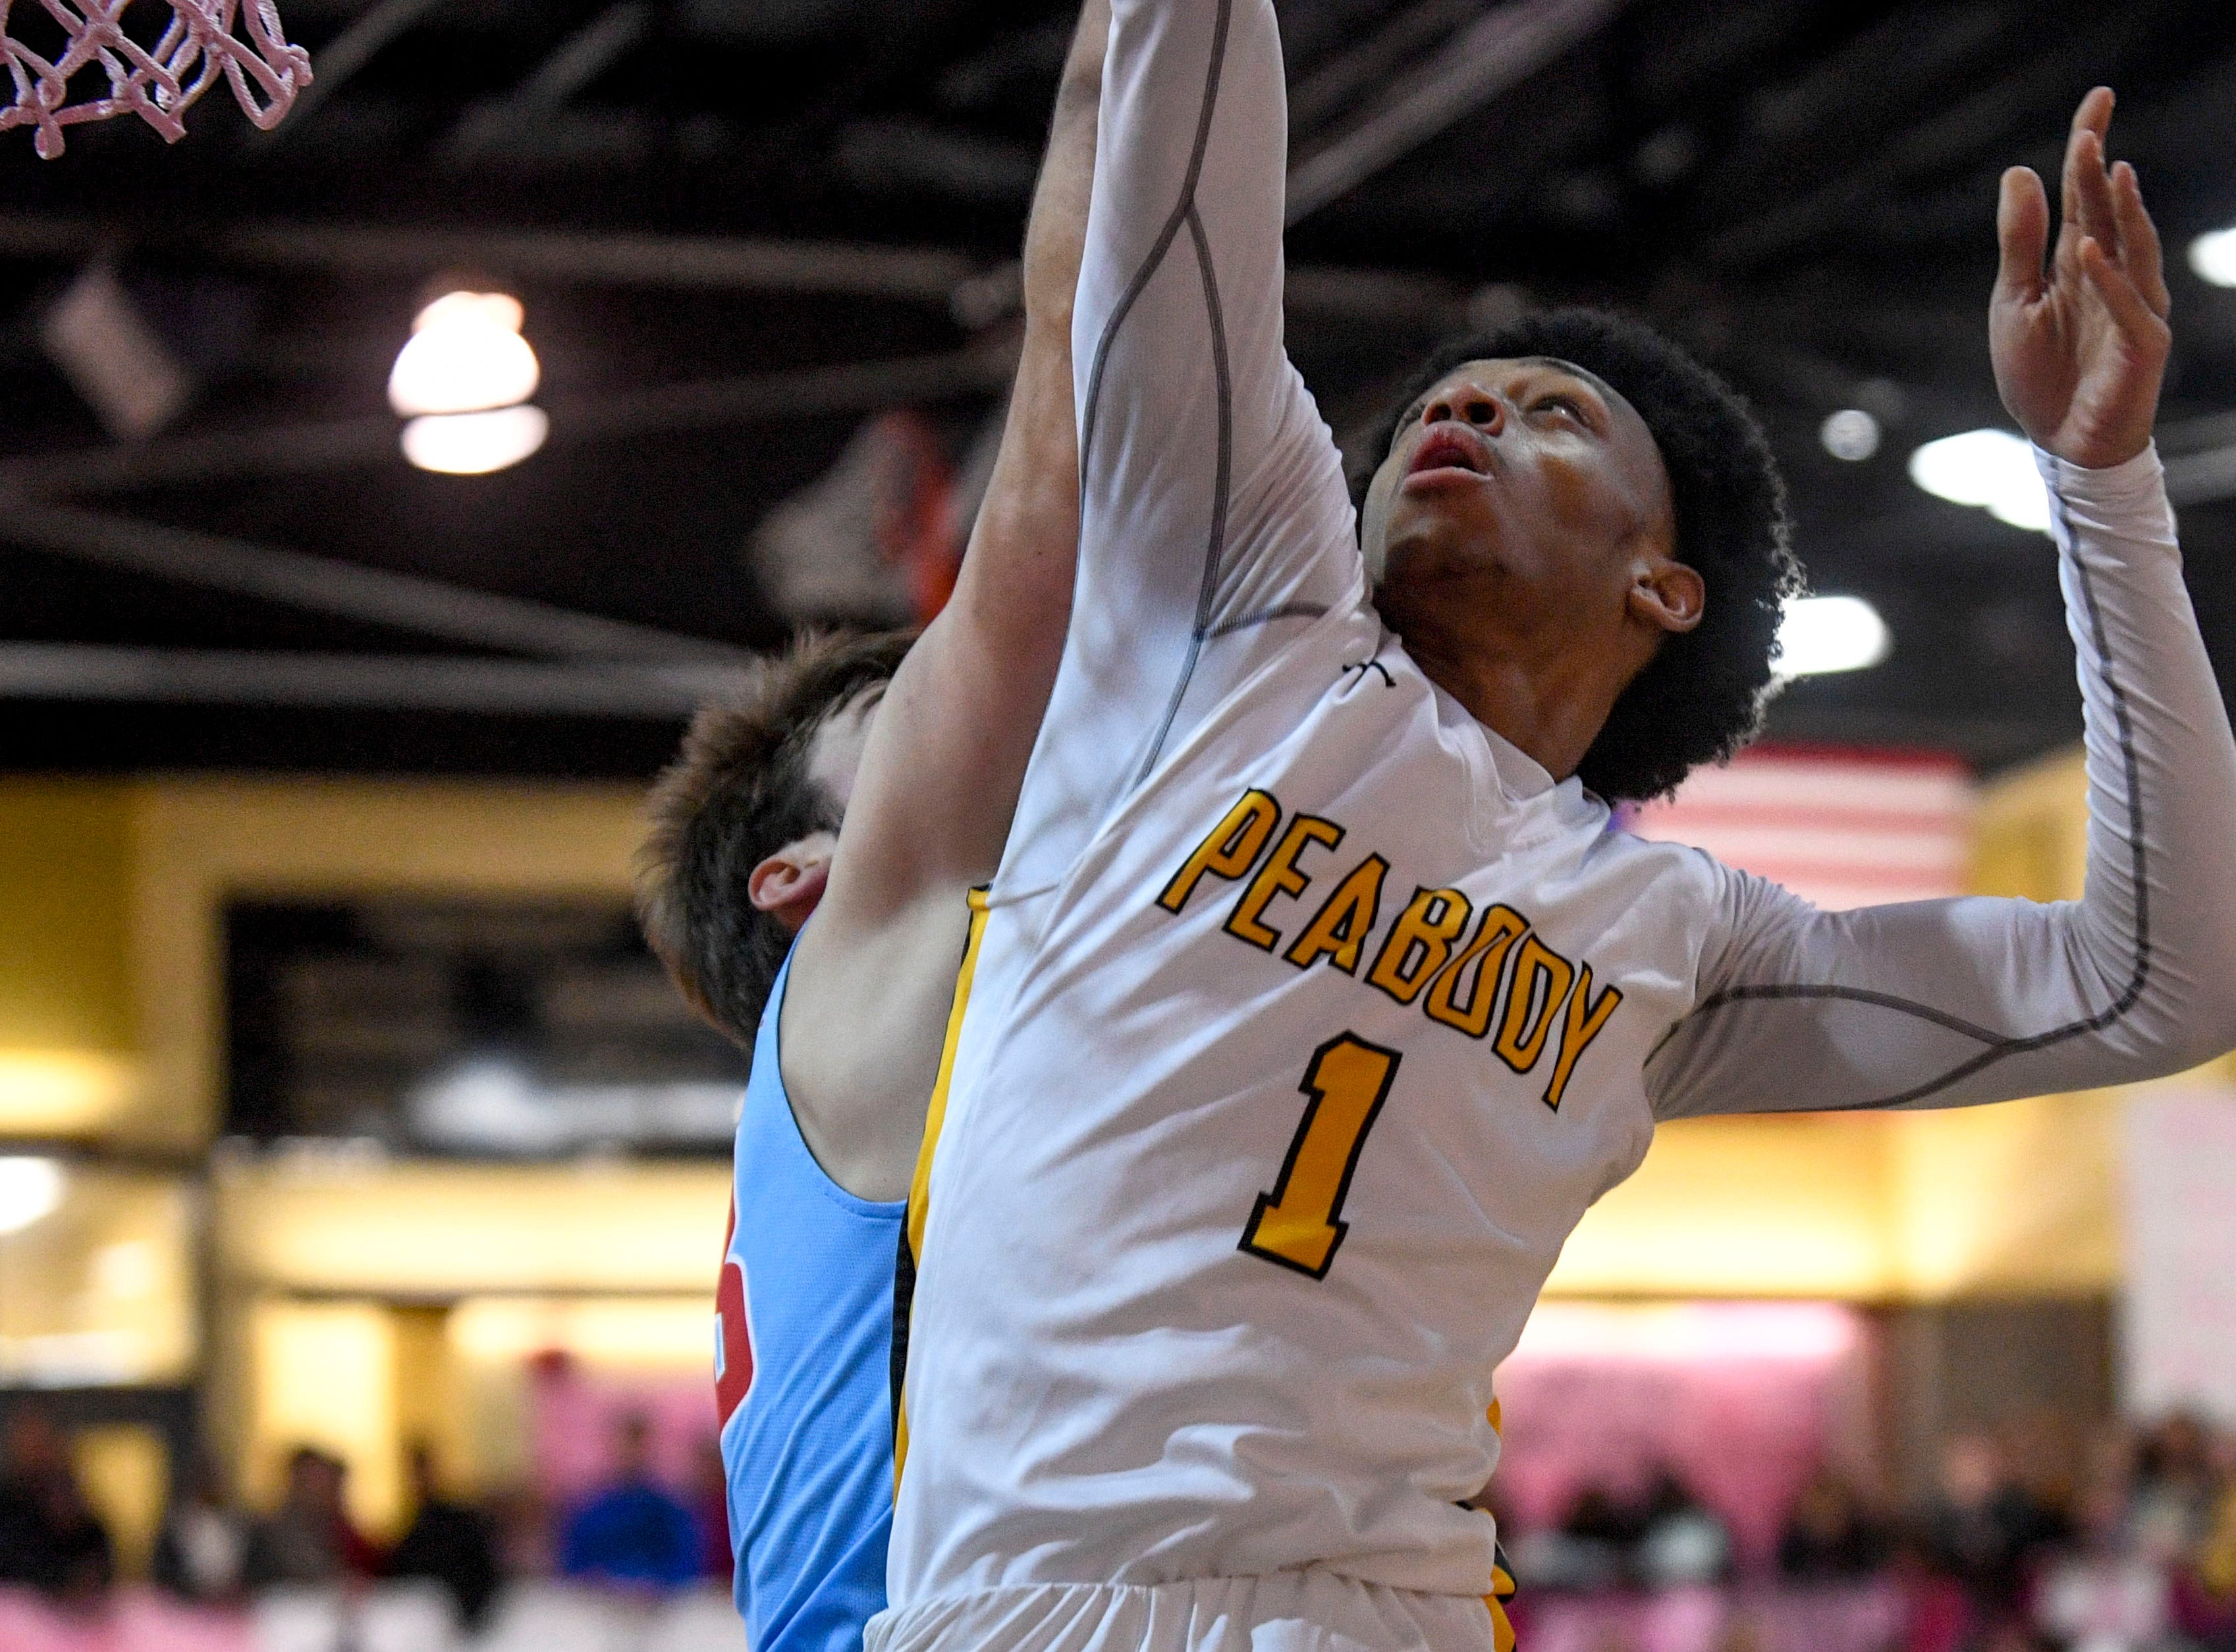 Peabody's Ja'Darius Harris (1) jumps to shoot a layup in a TSSAA basketball game between Peabody and Gibson County at Peabody High School in Trenton, Tenn., on Friday, Feb. 8, 2019.